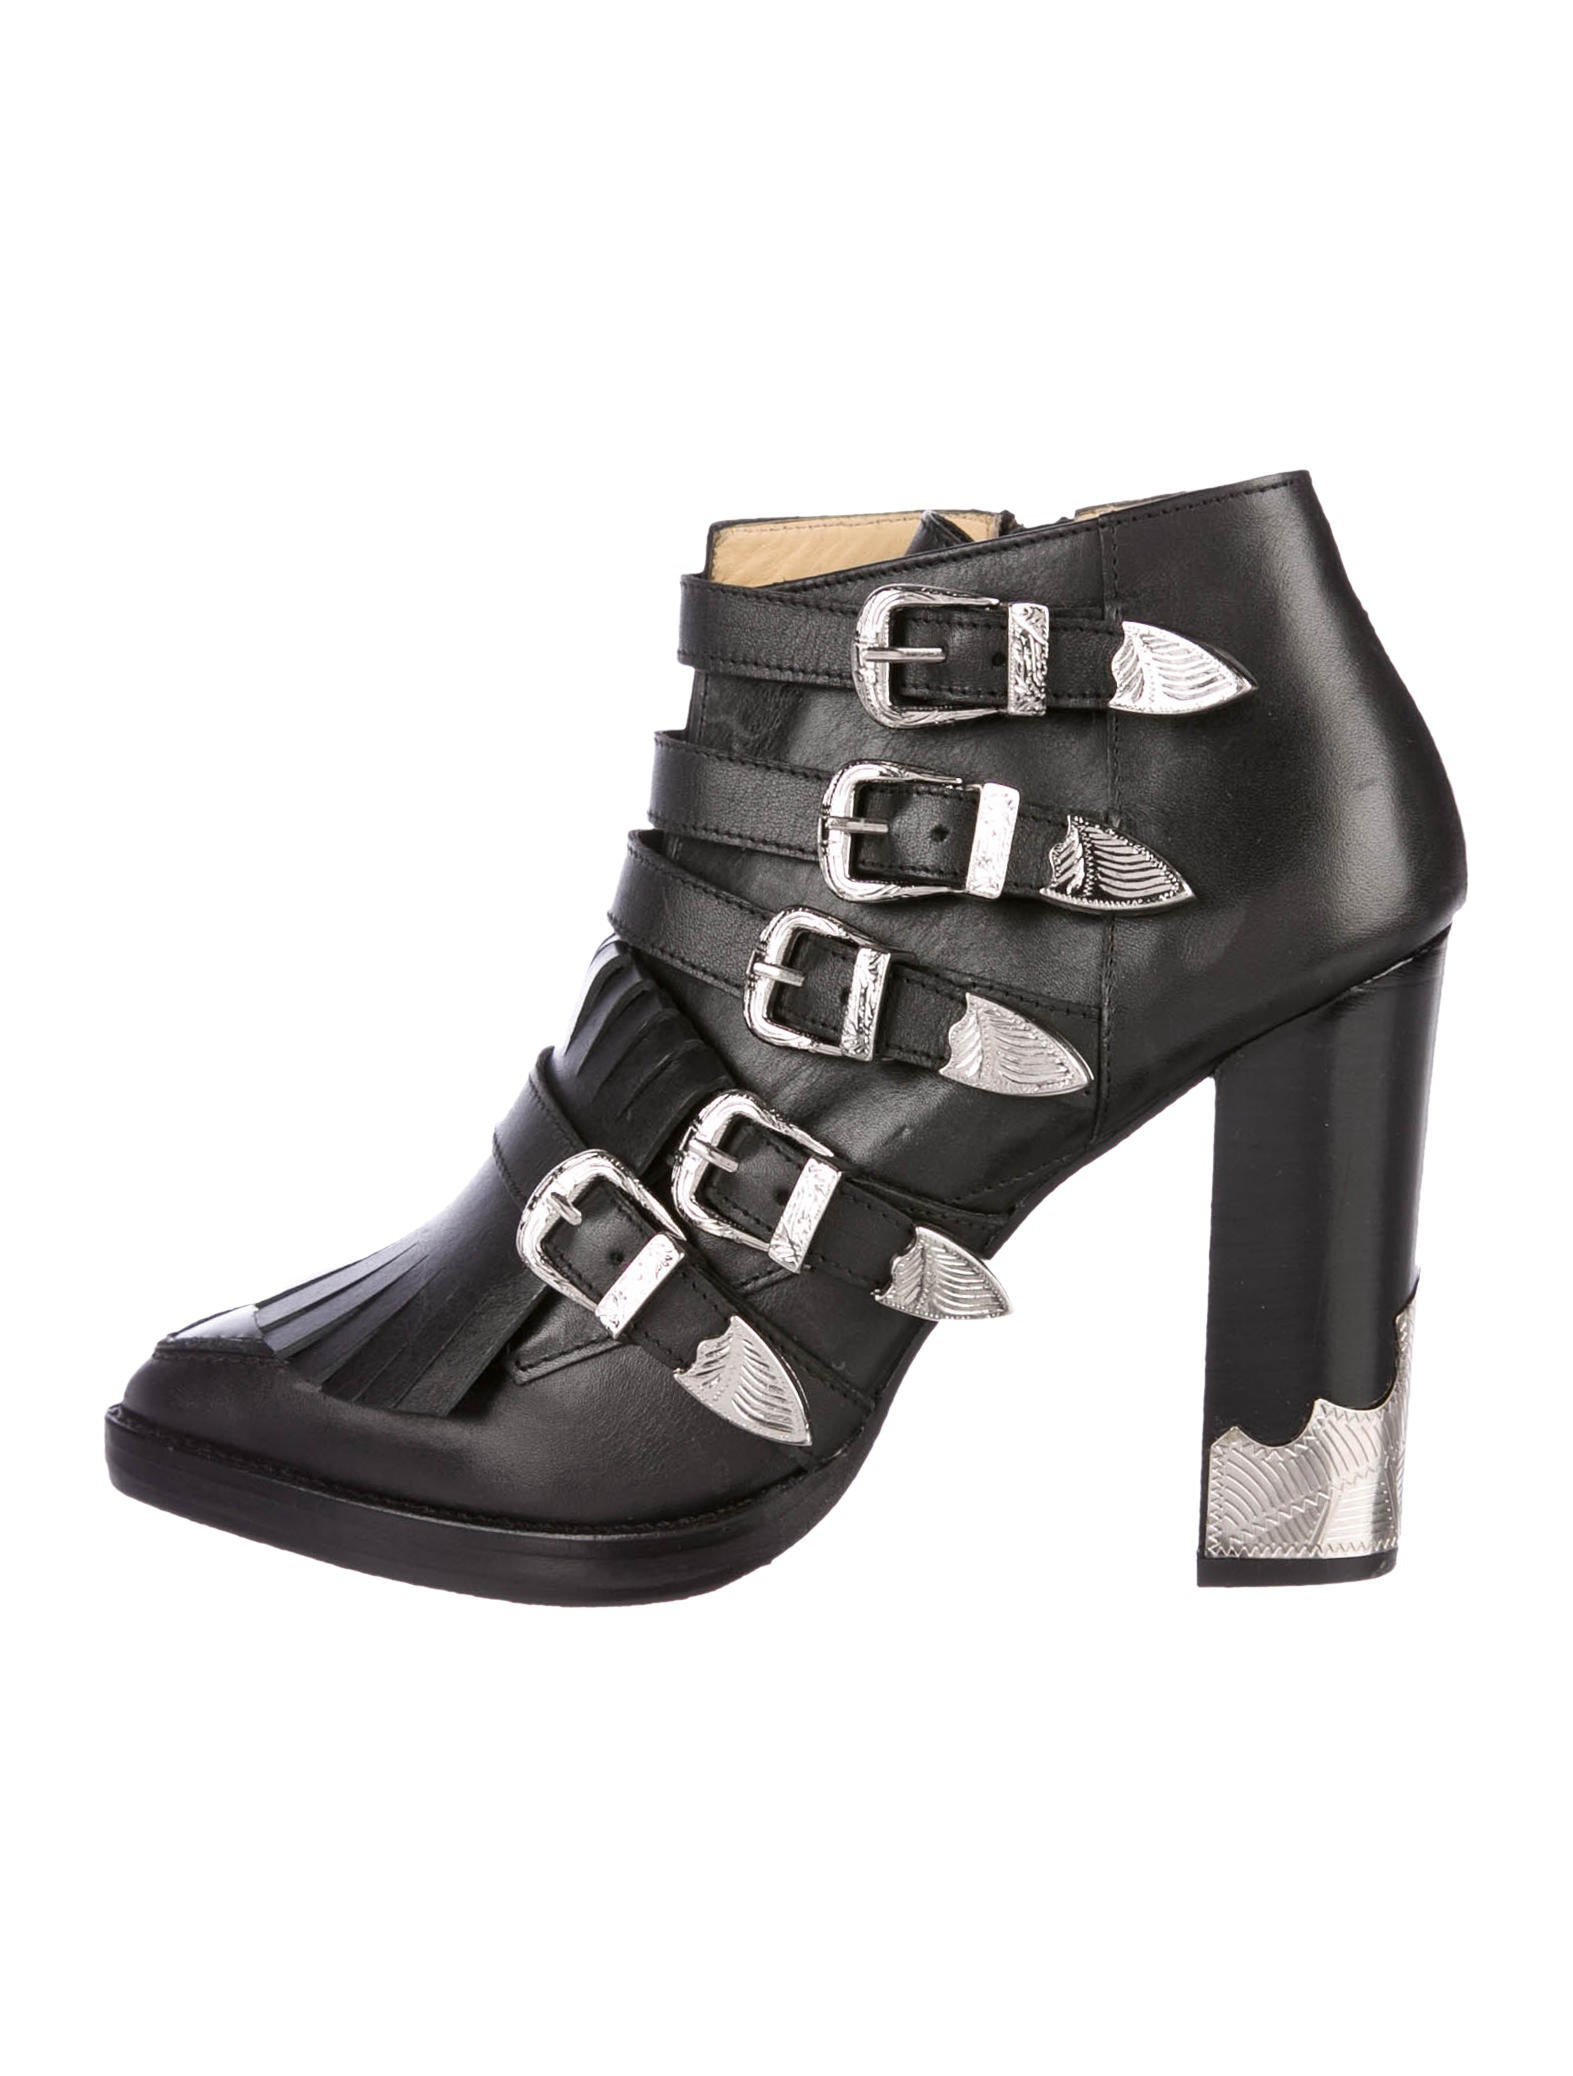 Toga Leather Buckle-Embellished Ankle Boots release dates online sale 2014 free shipping outlet store from china online RqBviYCWnW